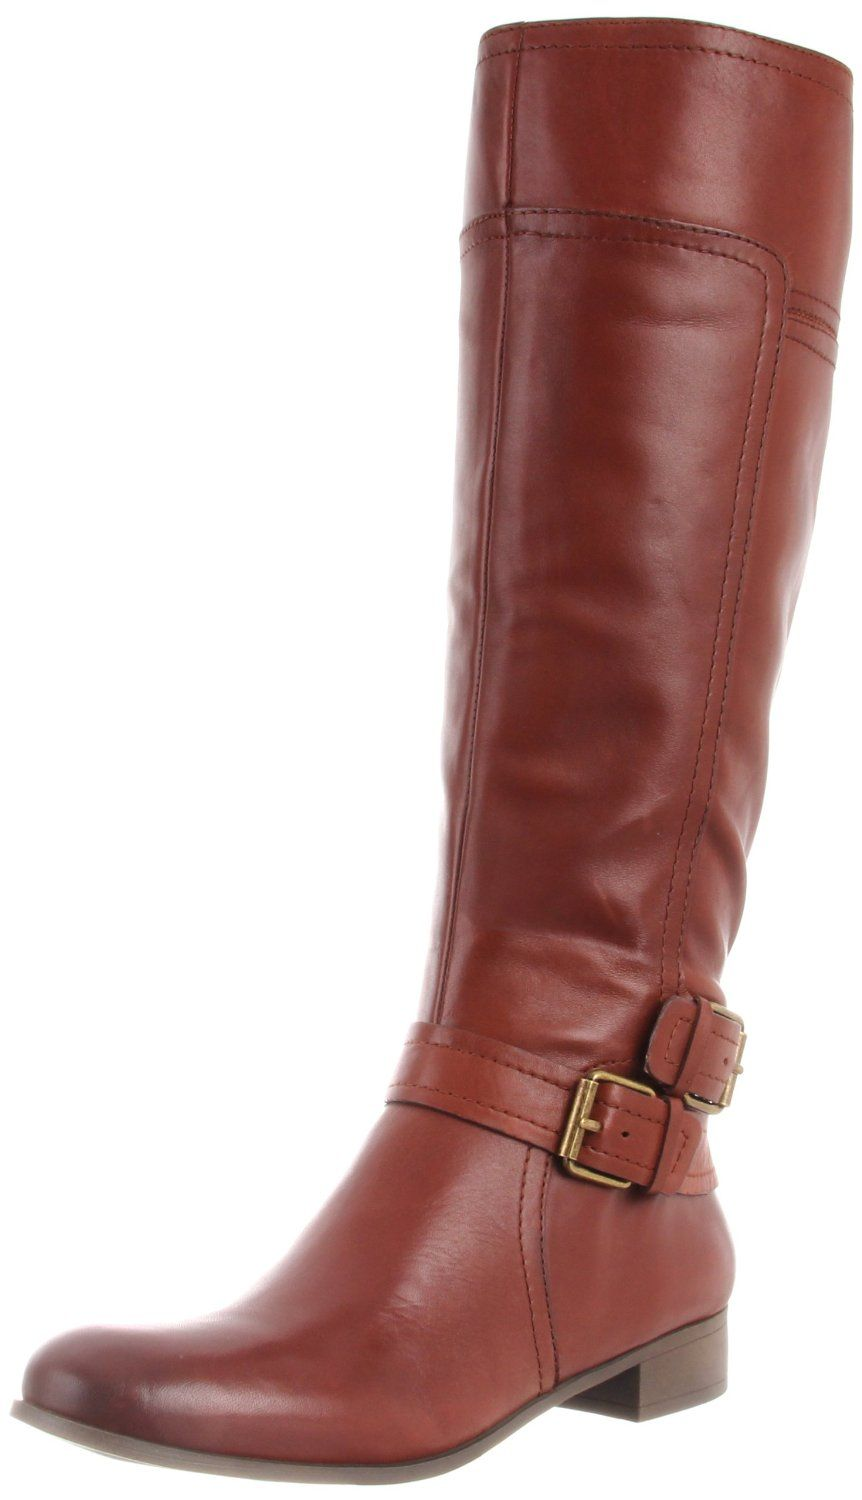 caf47be24d7 Amazon.com  Nine West Women s Shiza Knee-High Boot   94.99 ...